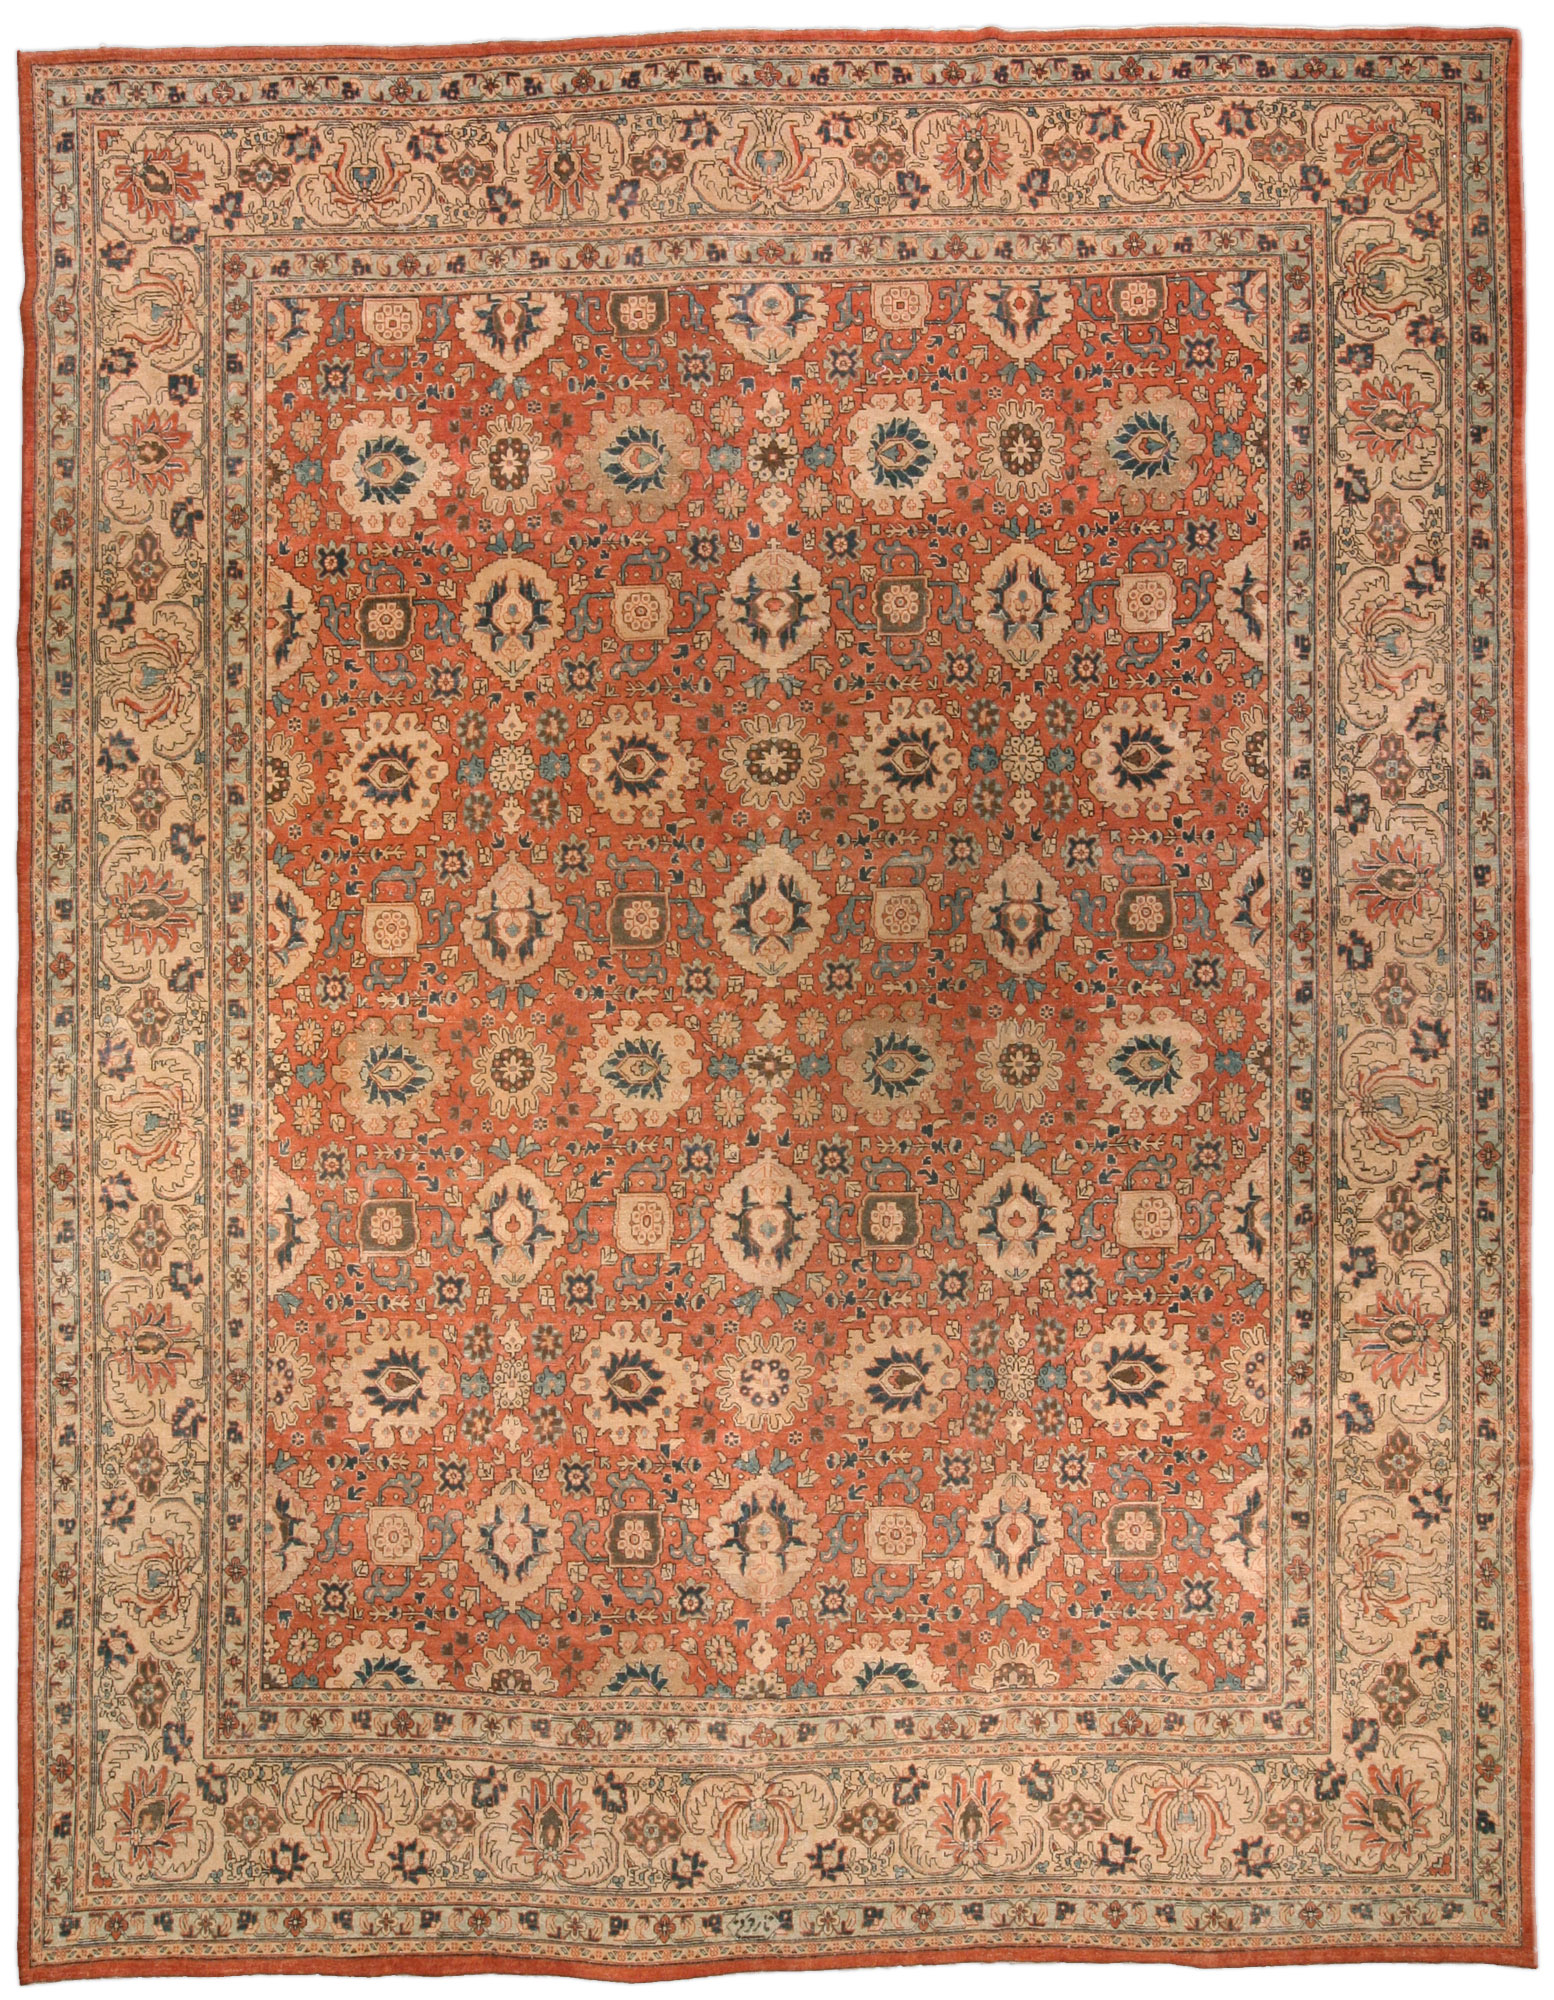 Antique Persian Tabriz Carpet Bb3255 By Doris Leslie Blau